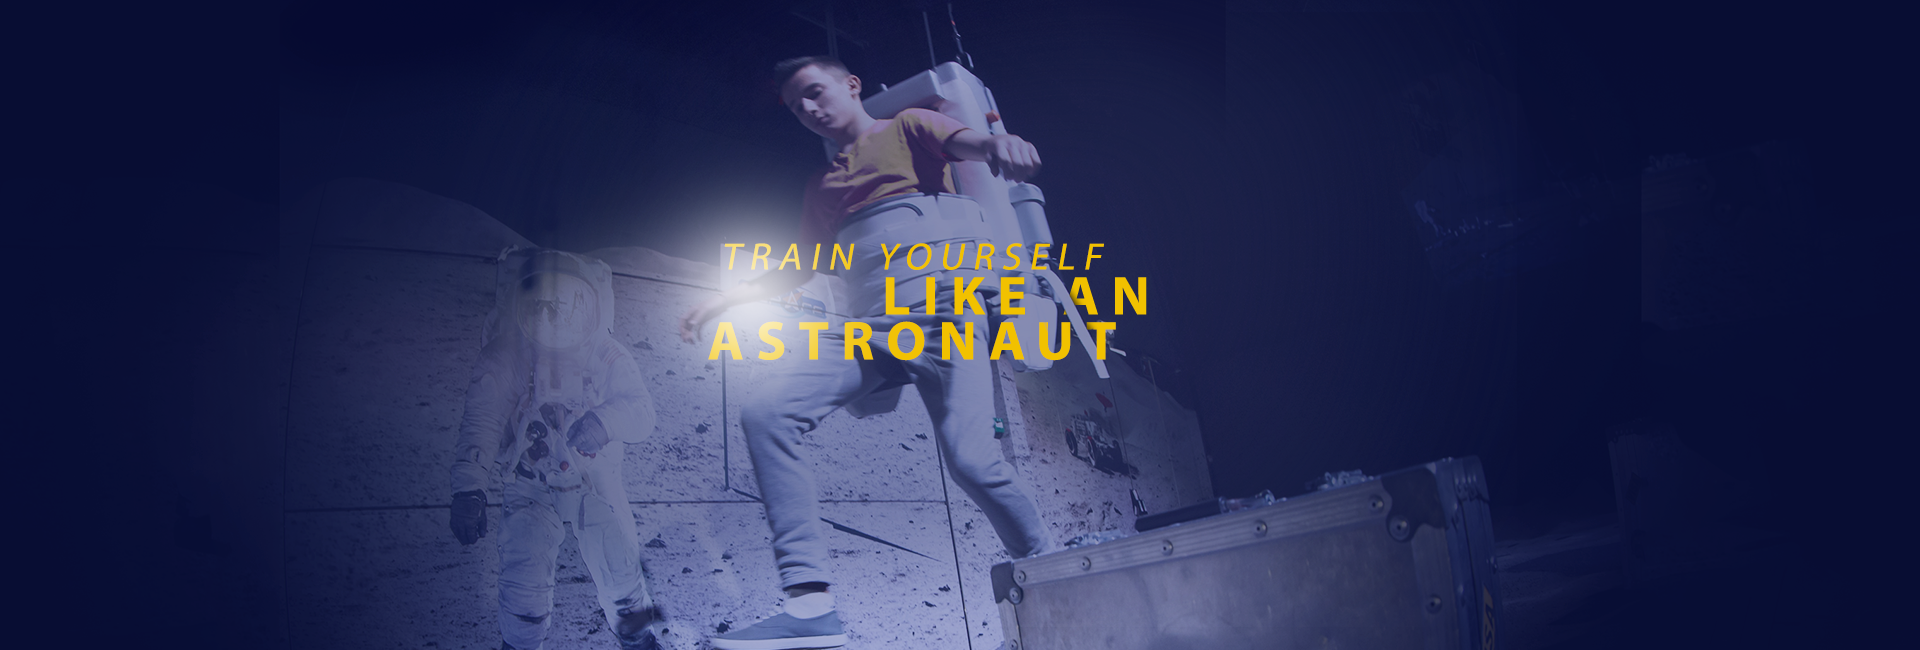 Train yourself like an astronaut